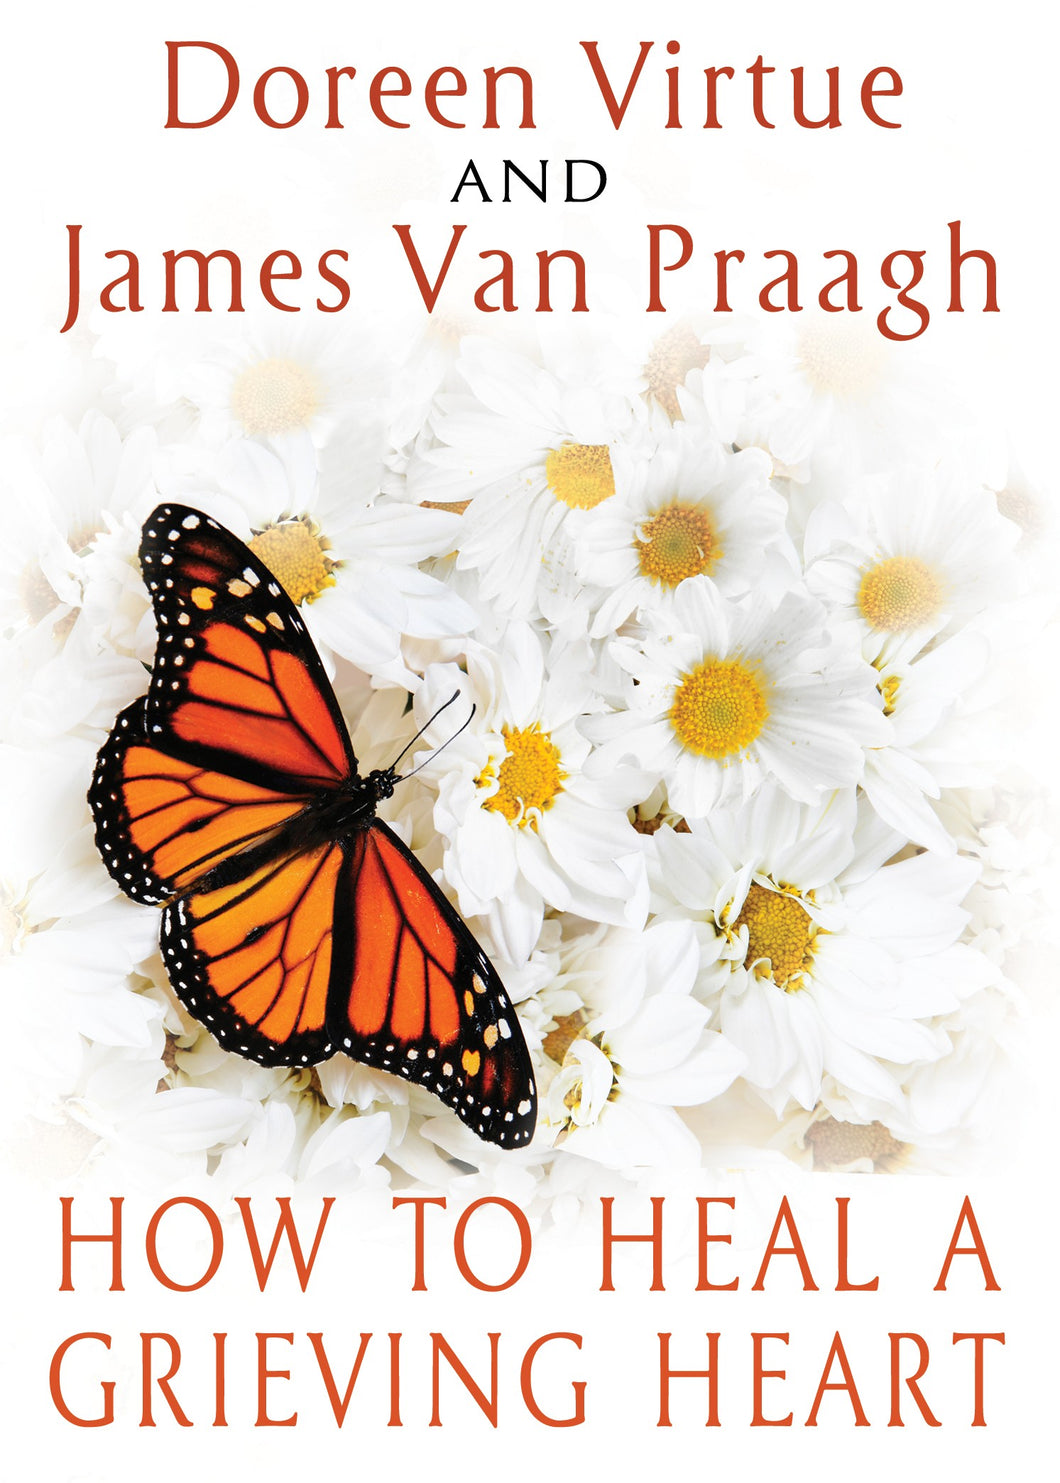 How To Heal A Grieving Heart by  DOREEN VIRTUE, JAMES VAN PRAAGH